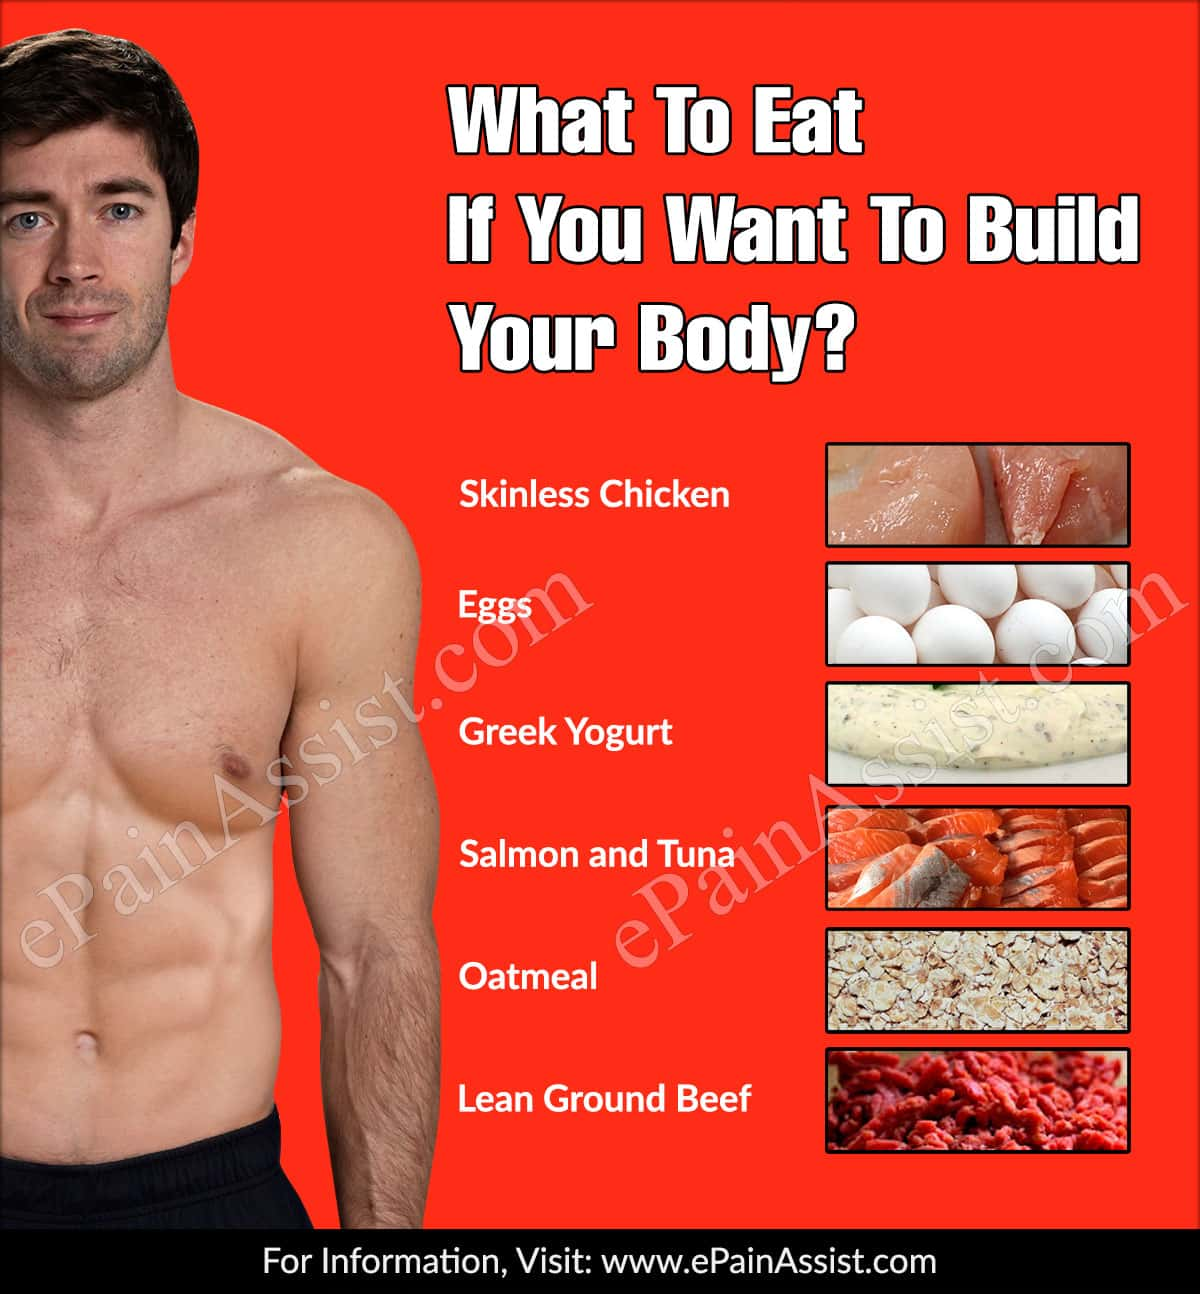 What To Eat If You Want To Build Your Body?